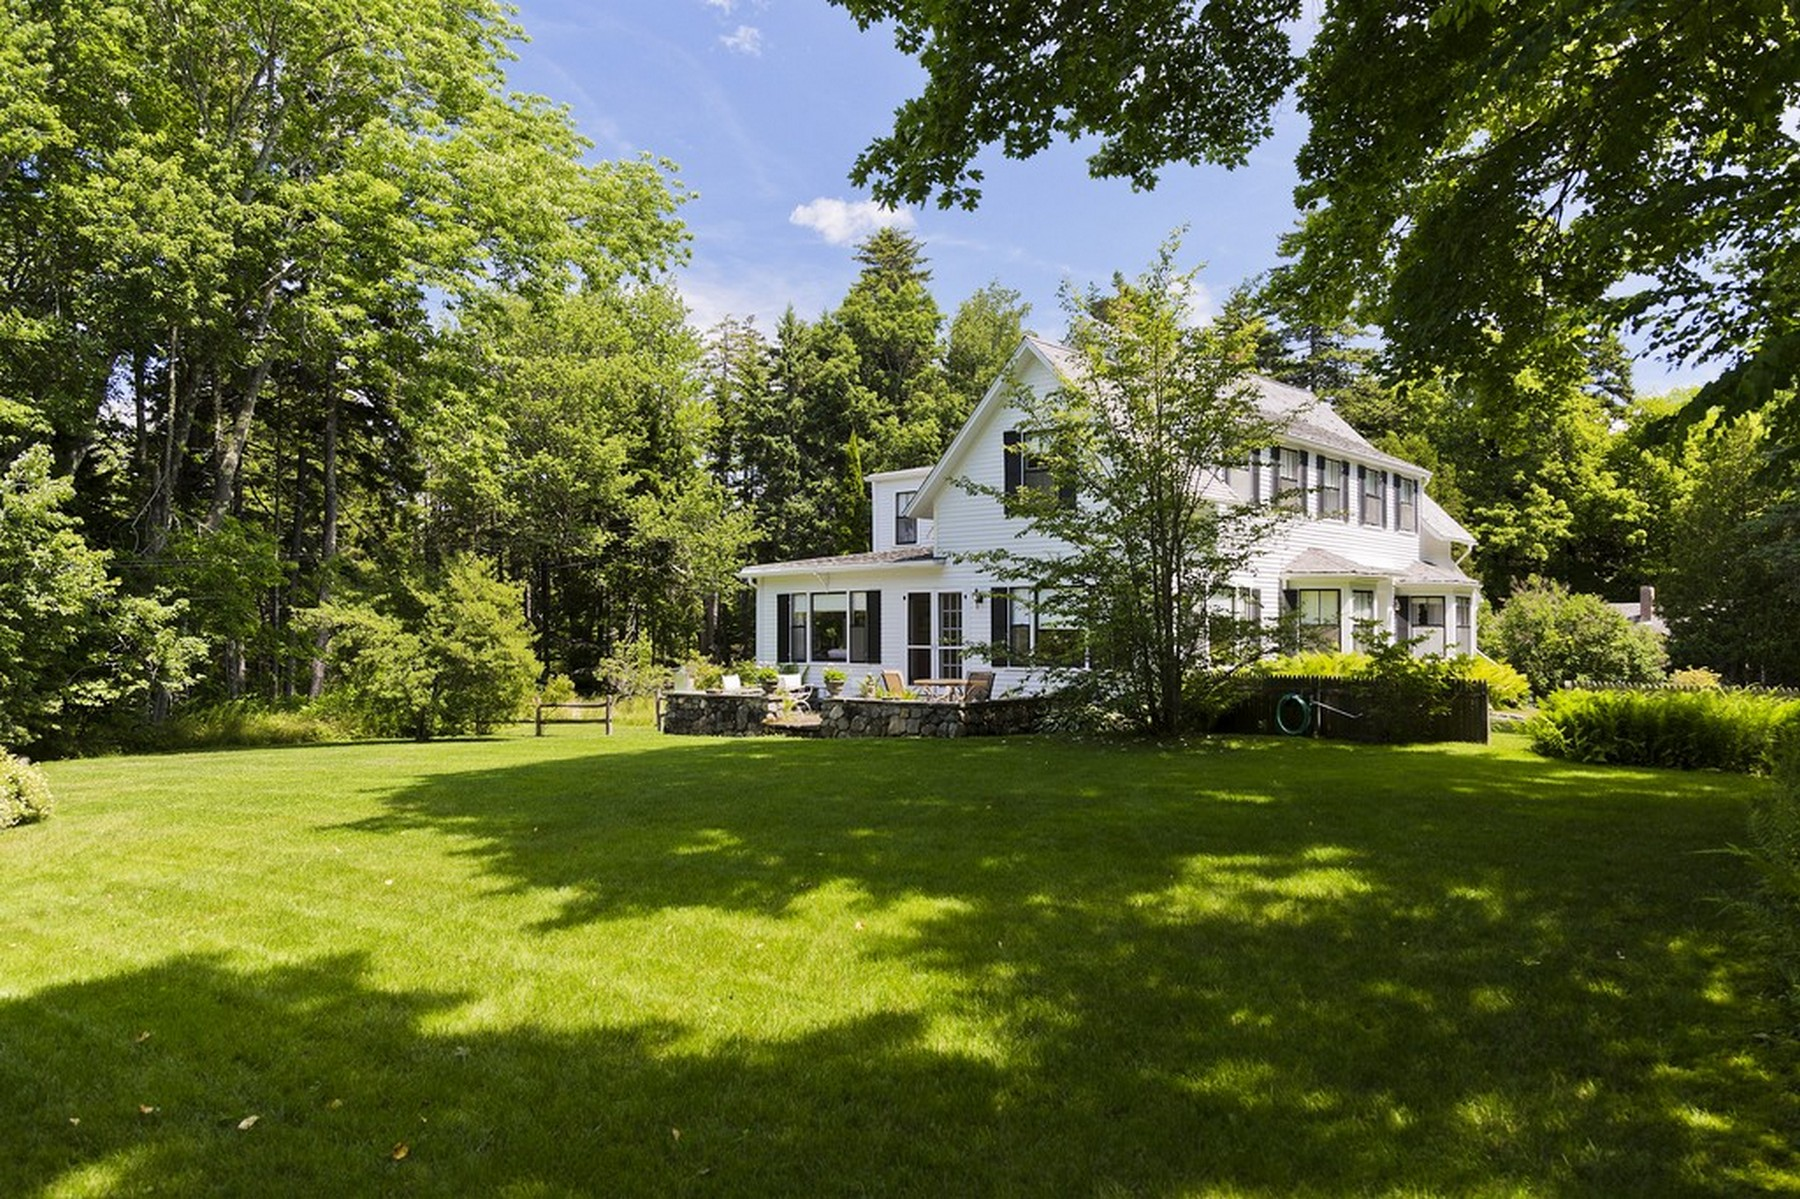 Single Family Home for Sale at Borderlea 67 Manchester Rd Northeast Harbor, Maine, 04662 United States